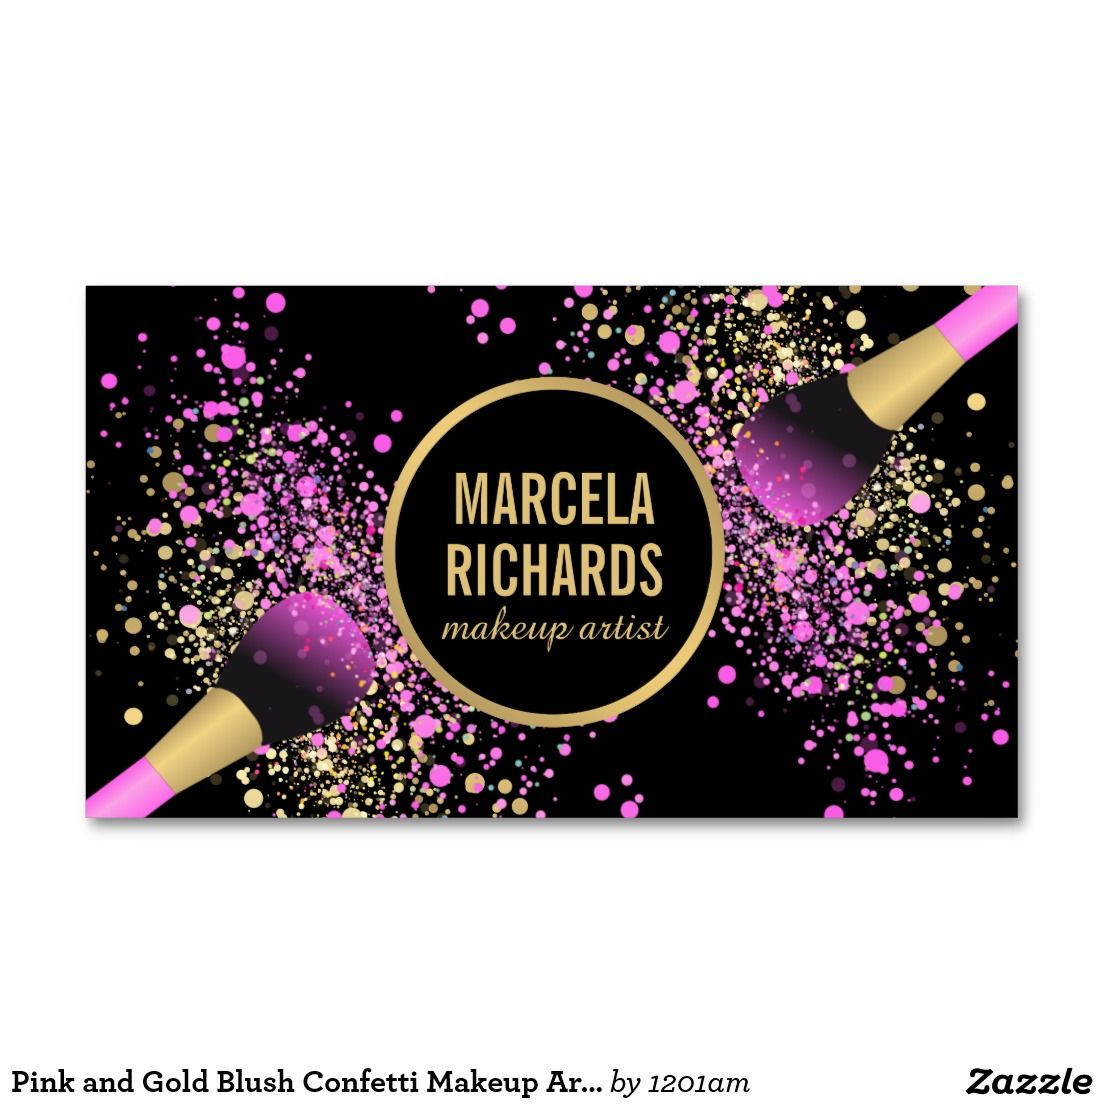 Pink and Gold Blush Confetti Makeup Artist Business Card